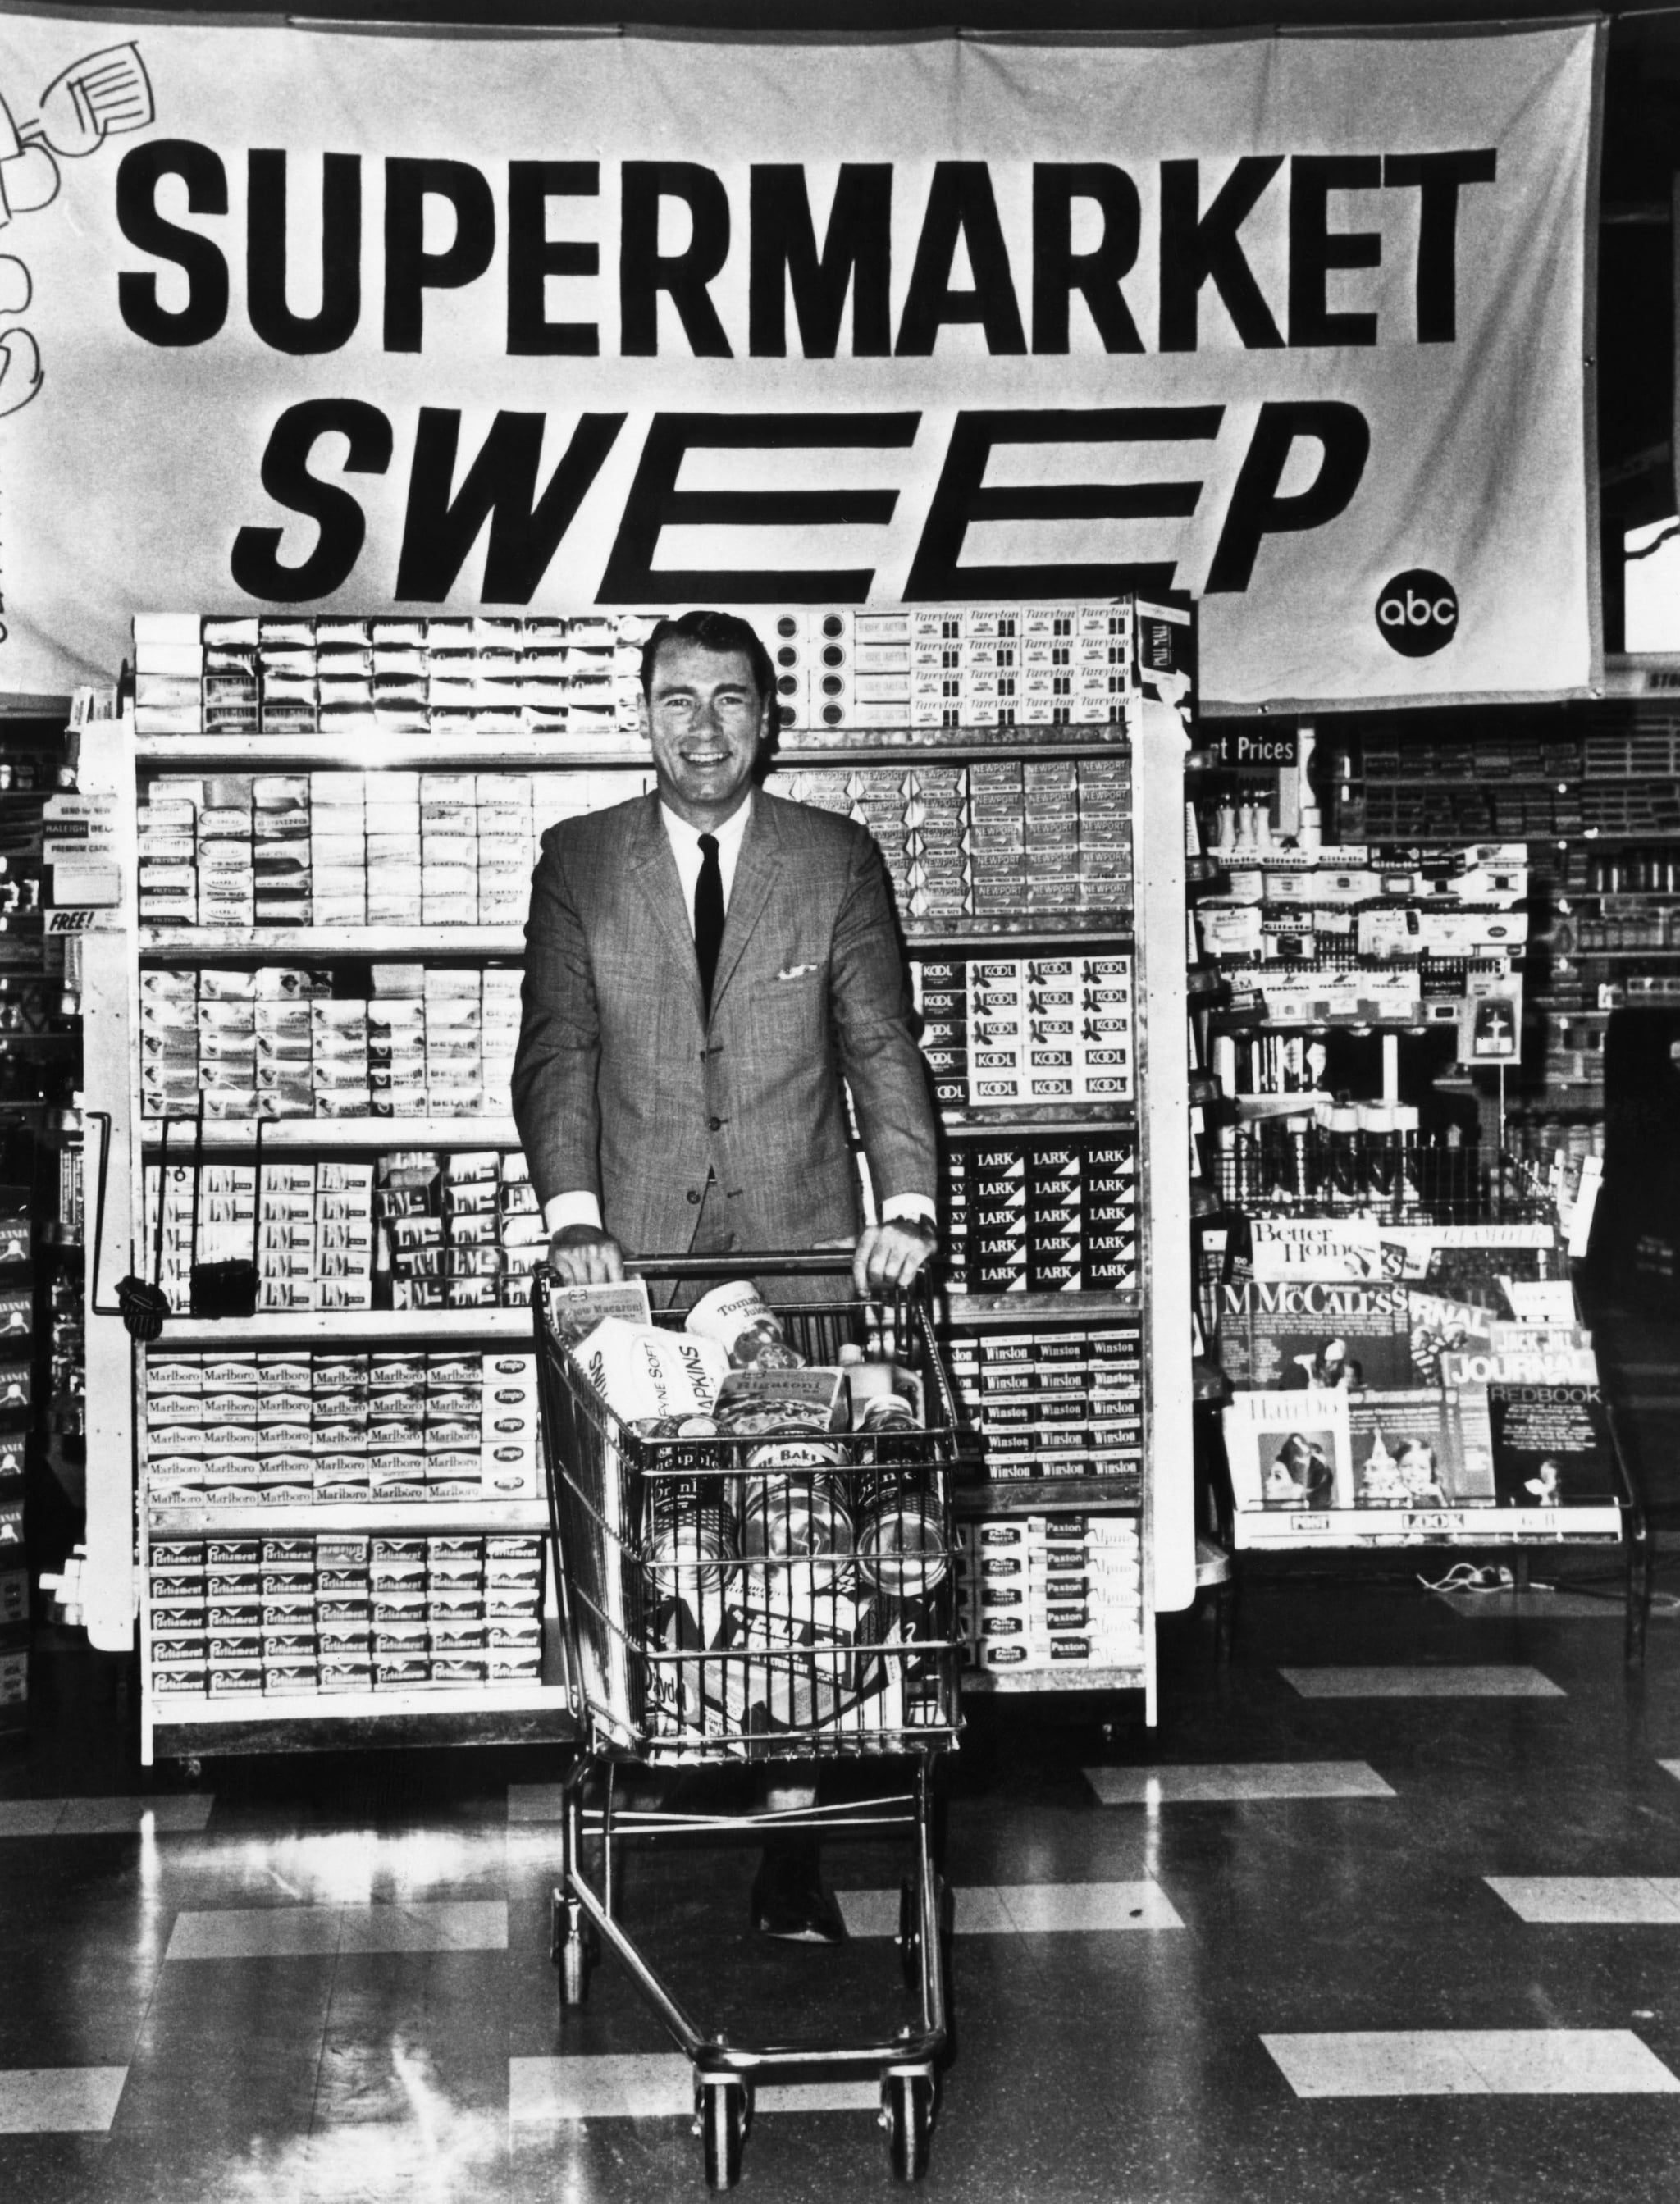 SUPERMARKET SWEEP, host Bill Malone, ABC-TV, 1965-1967